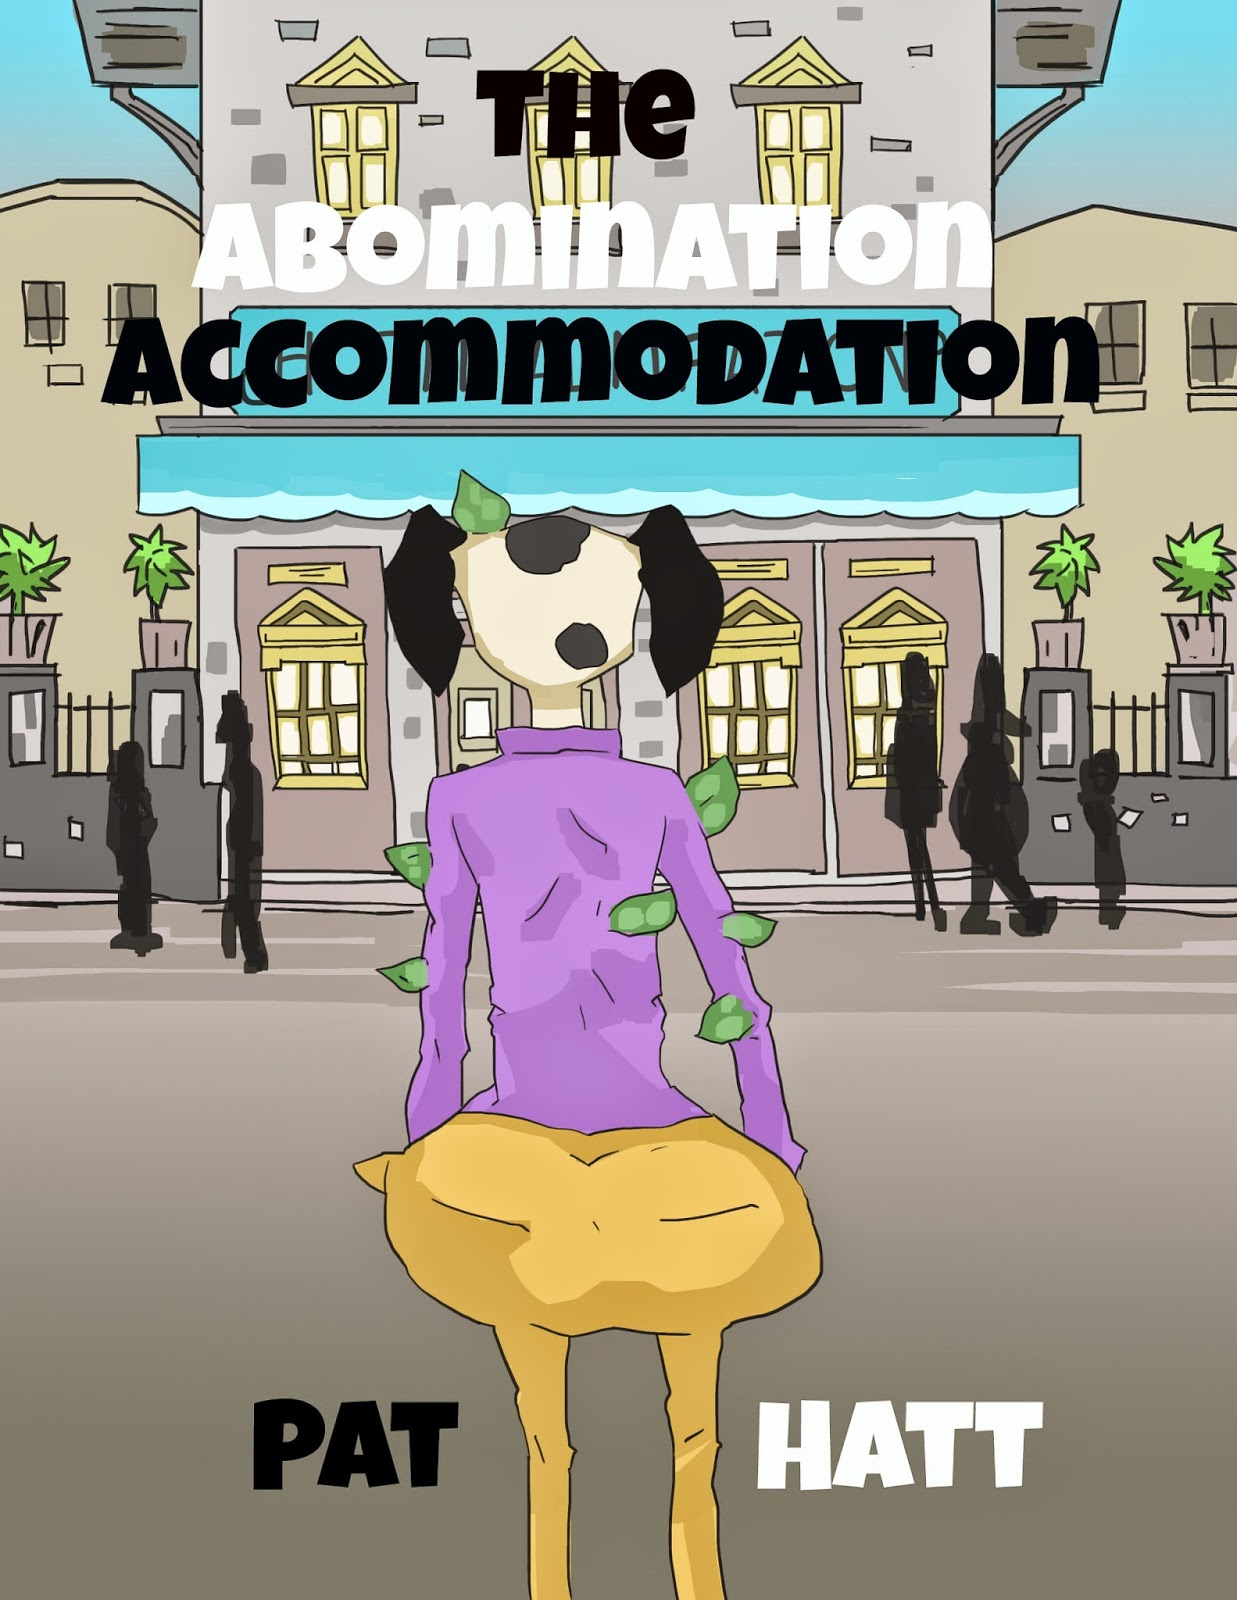 http://www.amazon.com/Abomination-Accommodation-Pat-Hatt-ebook/dp/B00VEJA7SQ